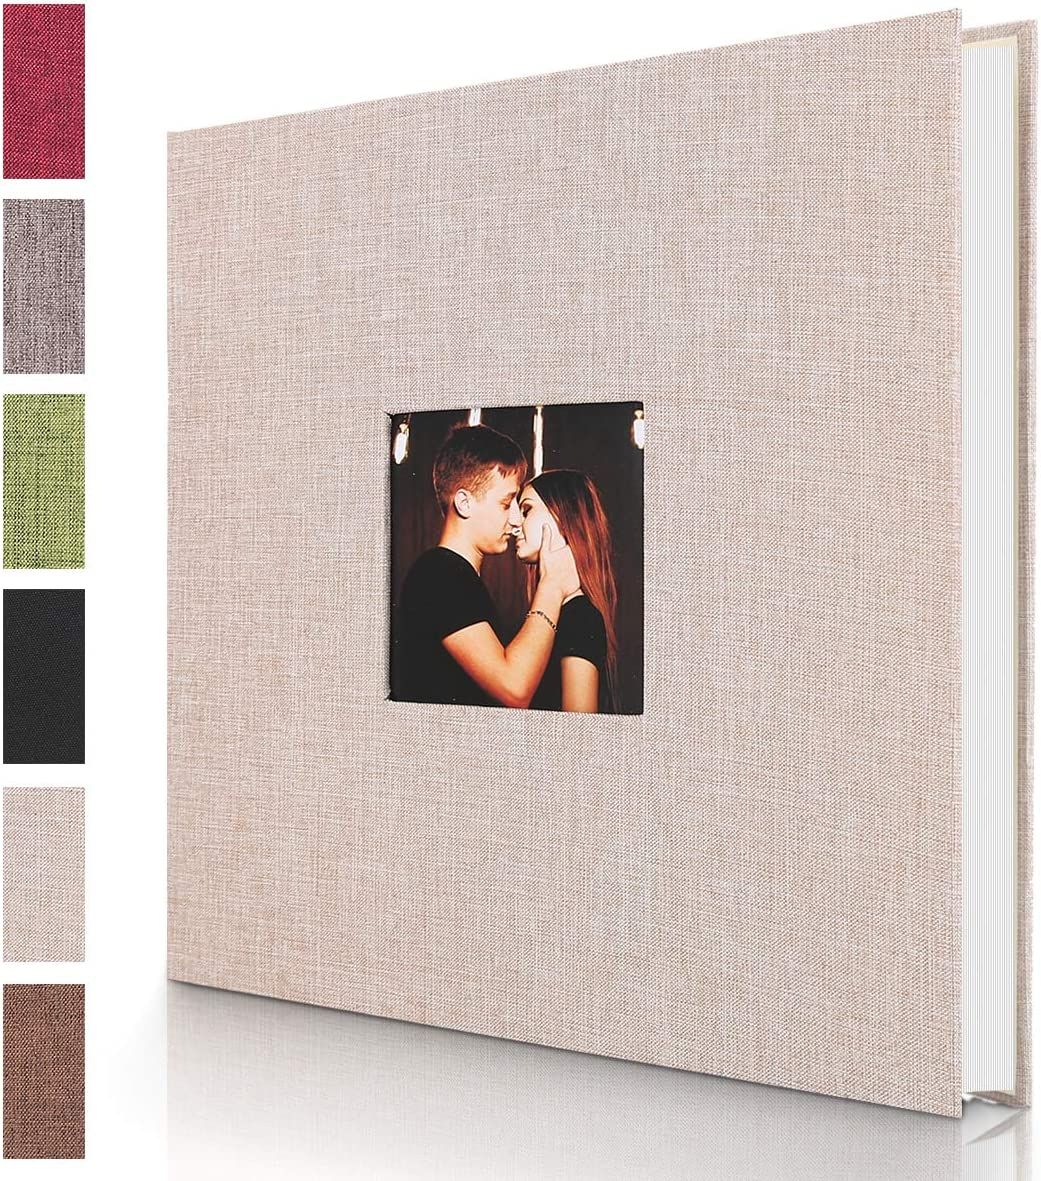 RECUTMS Self Adhesive Photo Album Magnetic Scrapbook Album 40 Pages Hardcover Length 11 x Width 10.6 Linen,Blue inches with Photo Album Storage Box DIY Accessories Kit